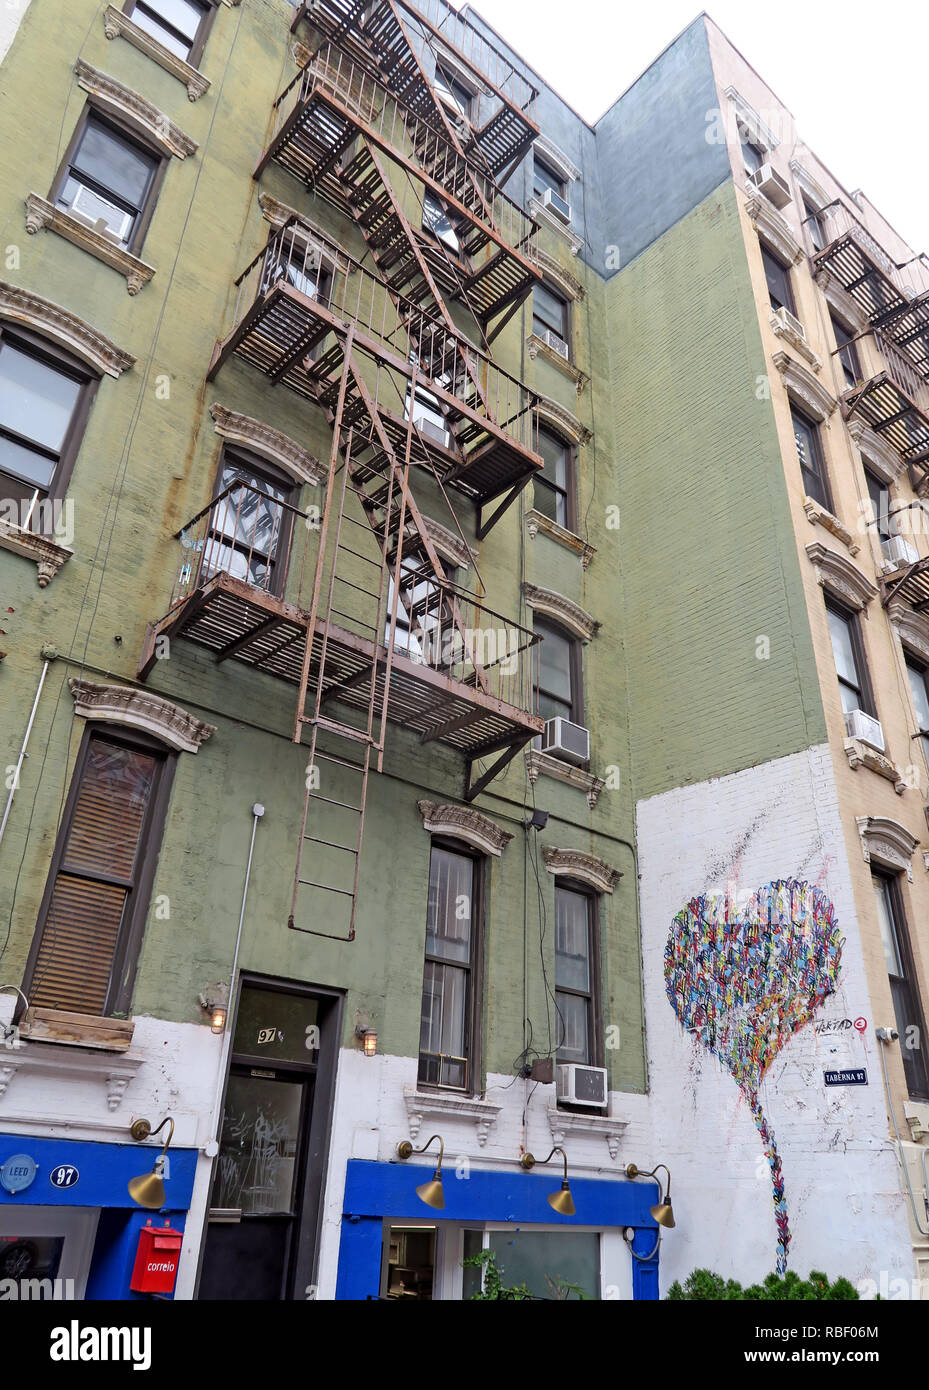 New York tenements, East 6th Street, East Village, Manhattan, New York City, NYC, NY, USA - Stock Image